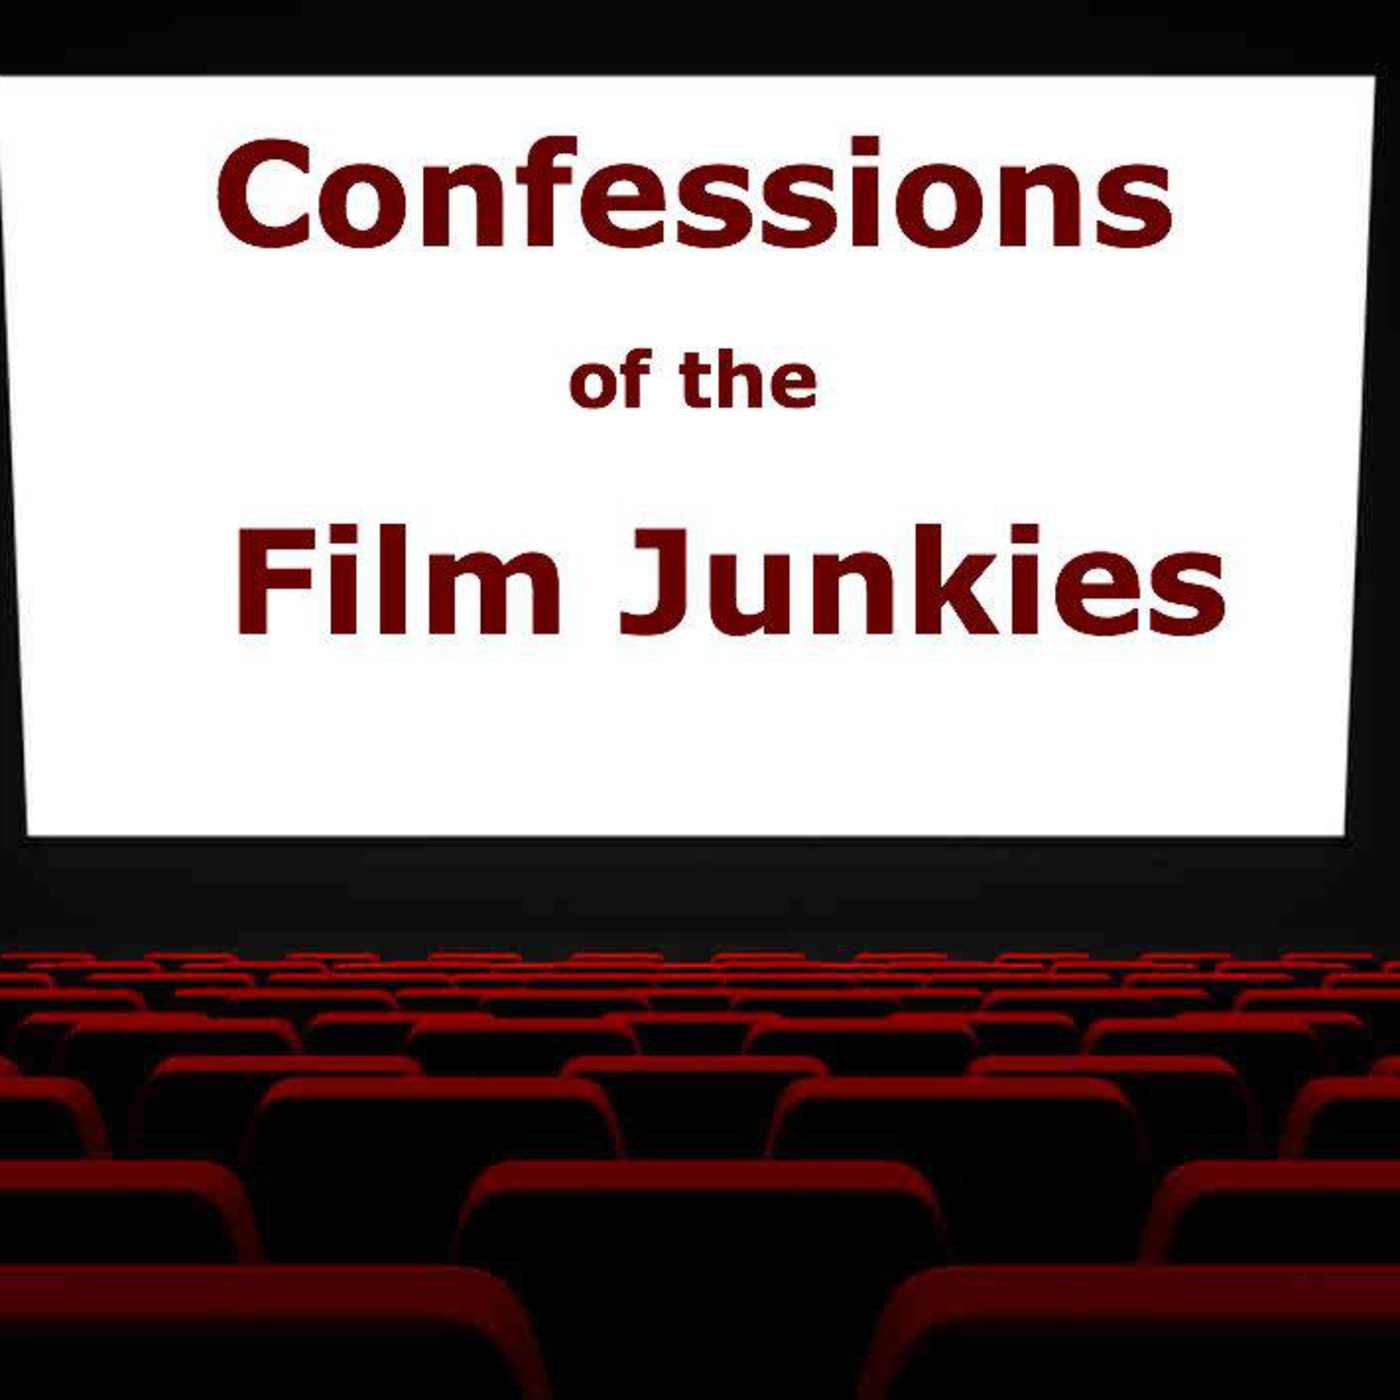 Confessions of the Film Junkies